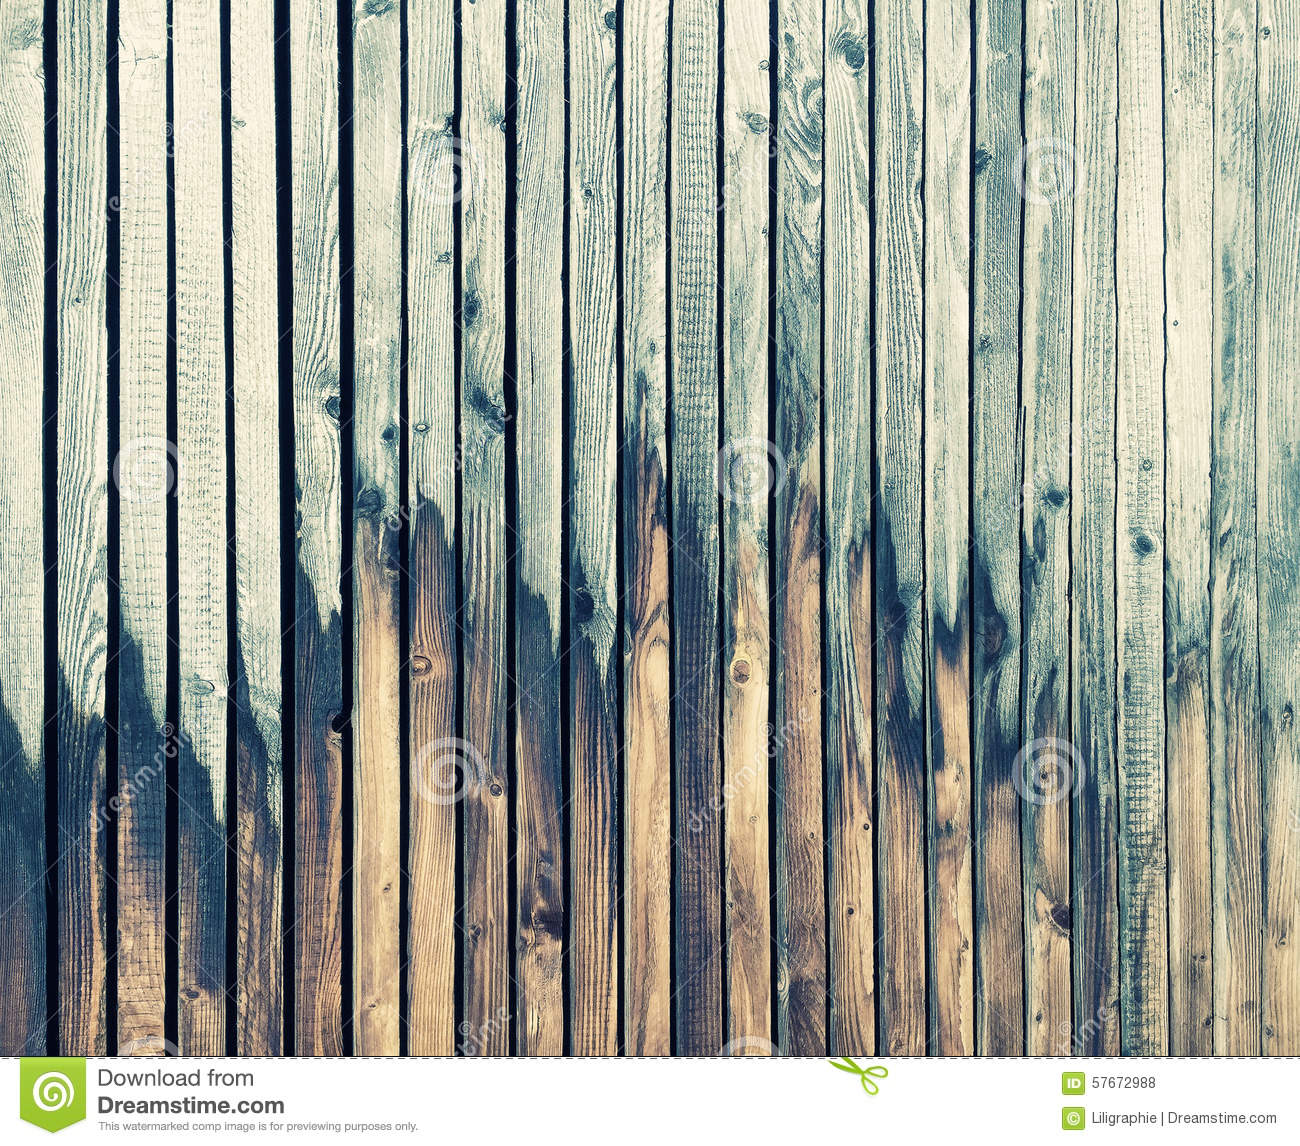 Vintage Wooden Background Wallpaper Texture Retro Style